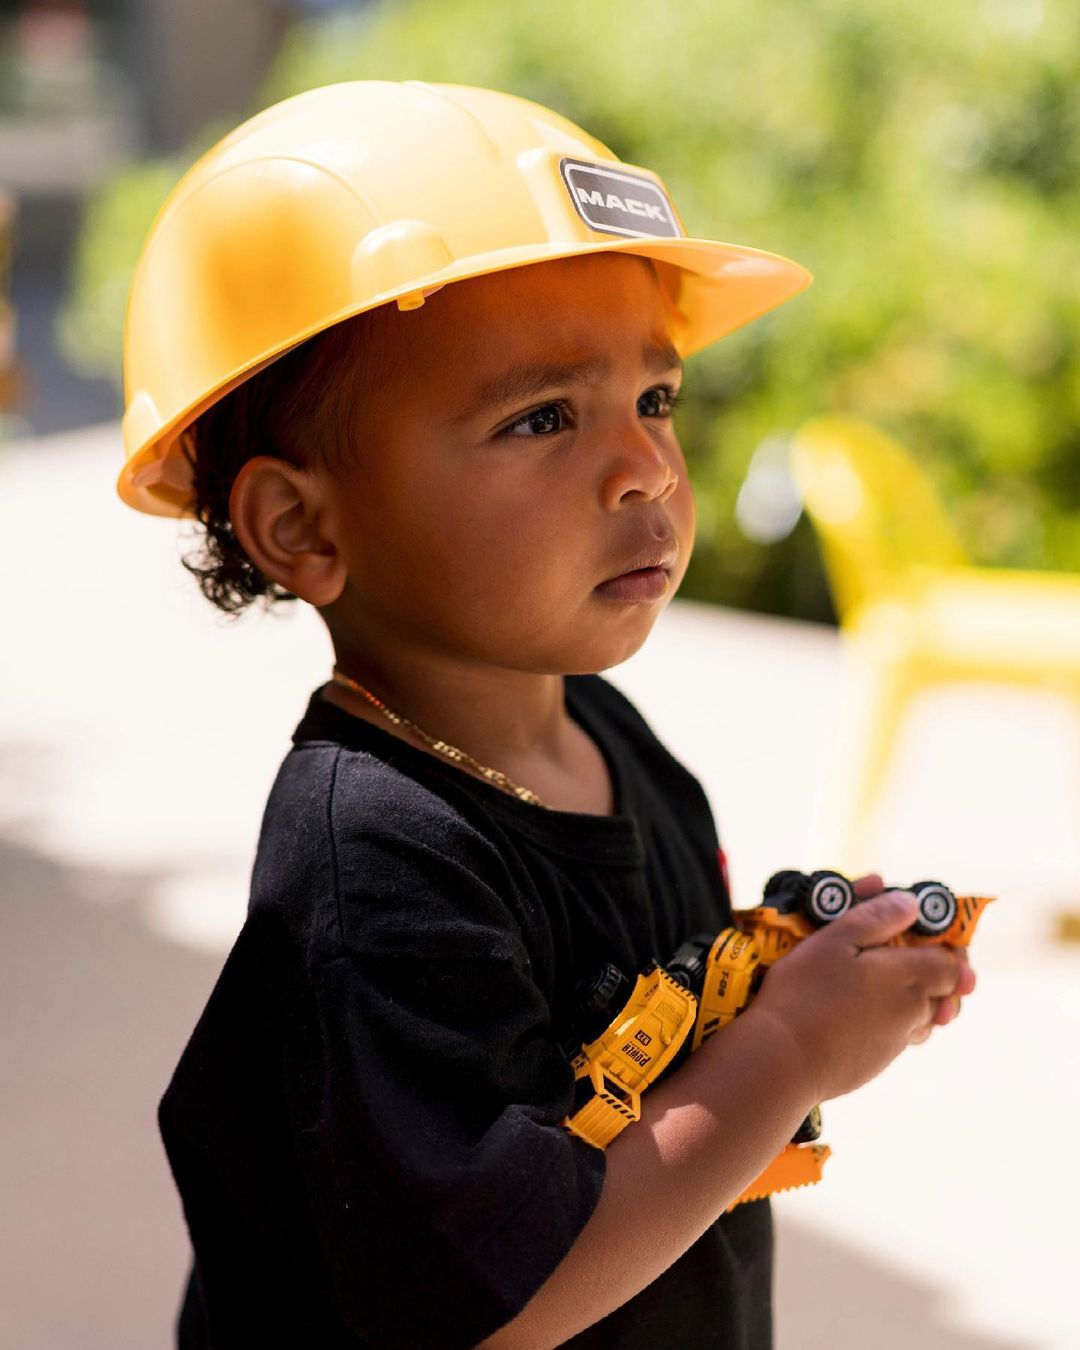 Kim Kardashian Throws Construction-Themed Birthday Party for Psalm |  PEOPLE.com